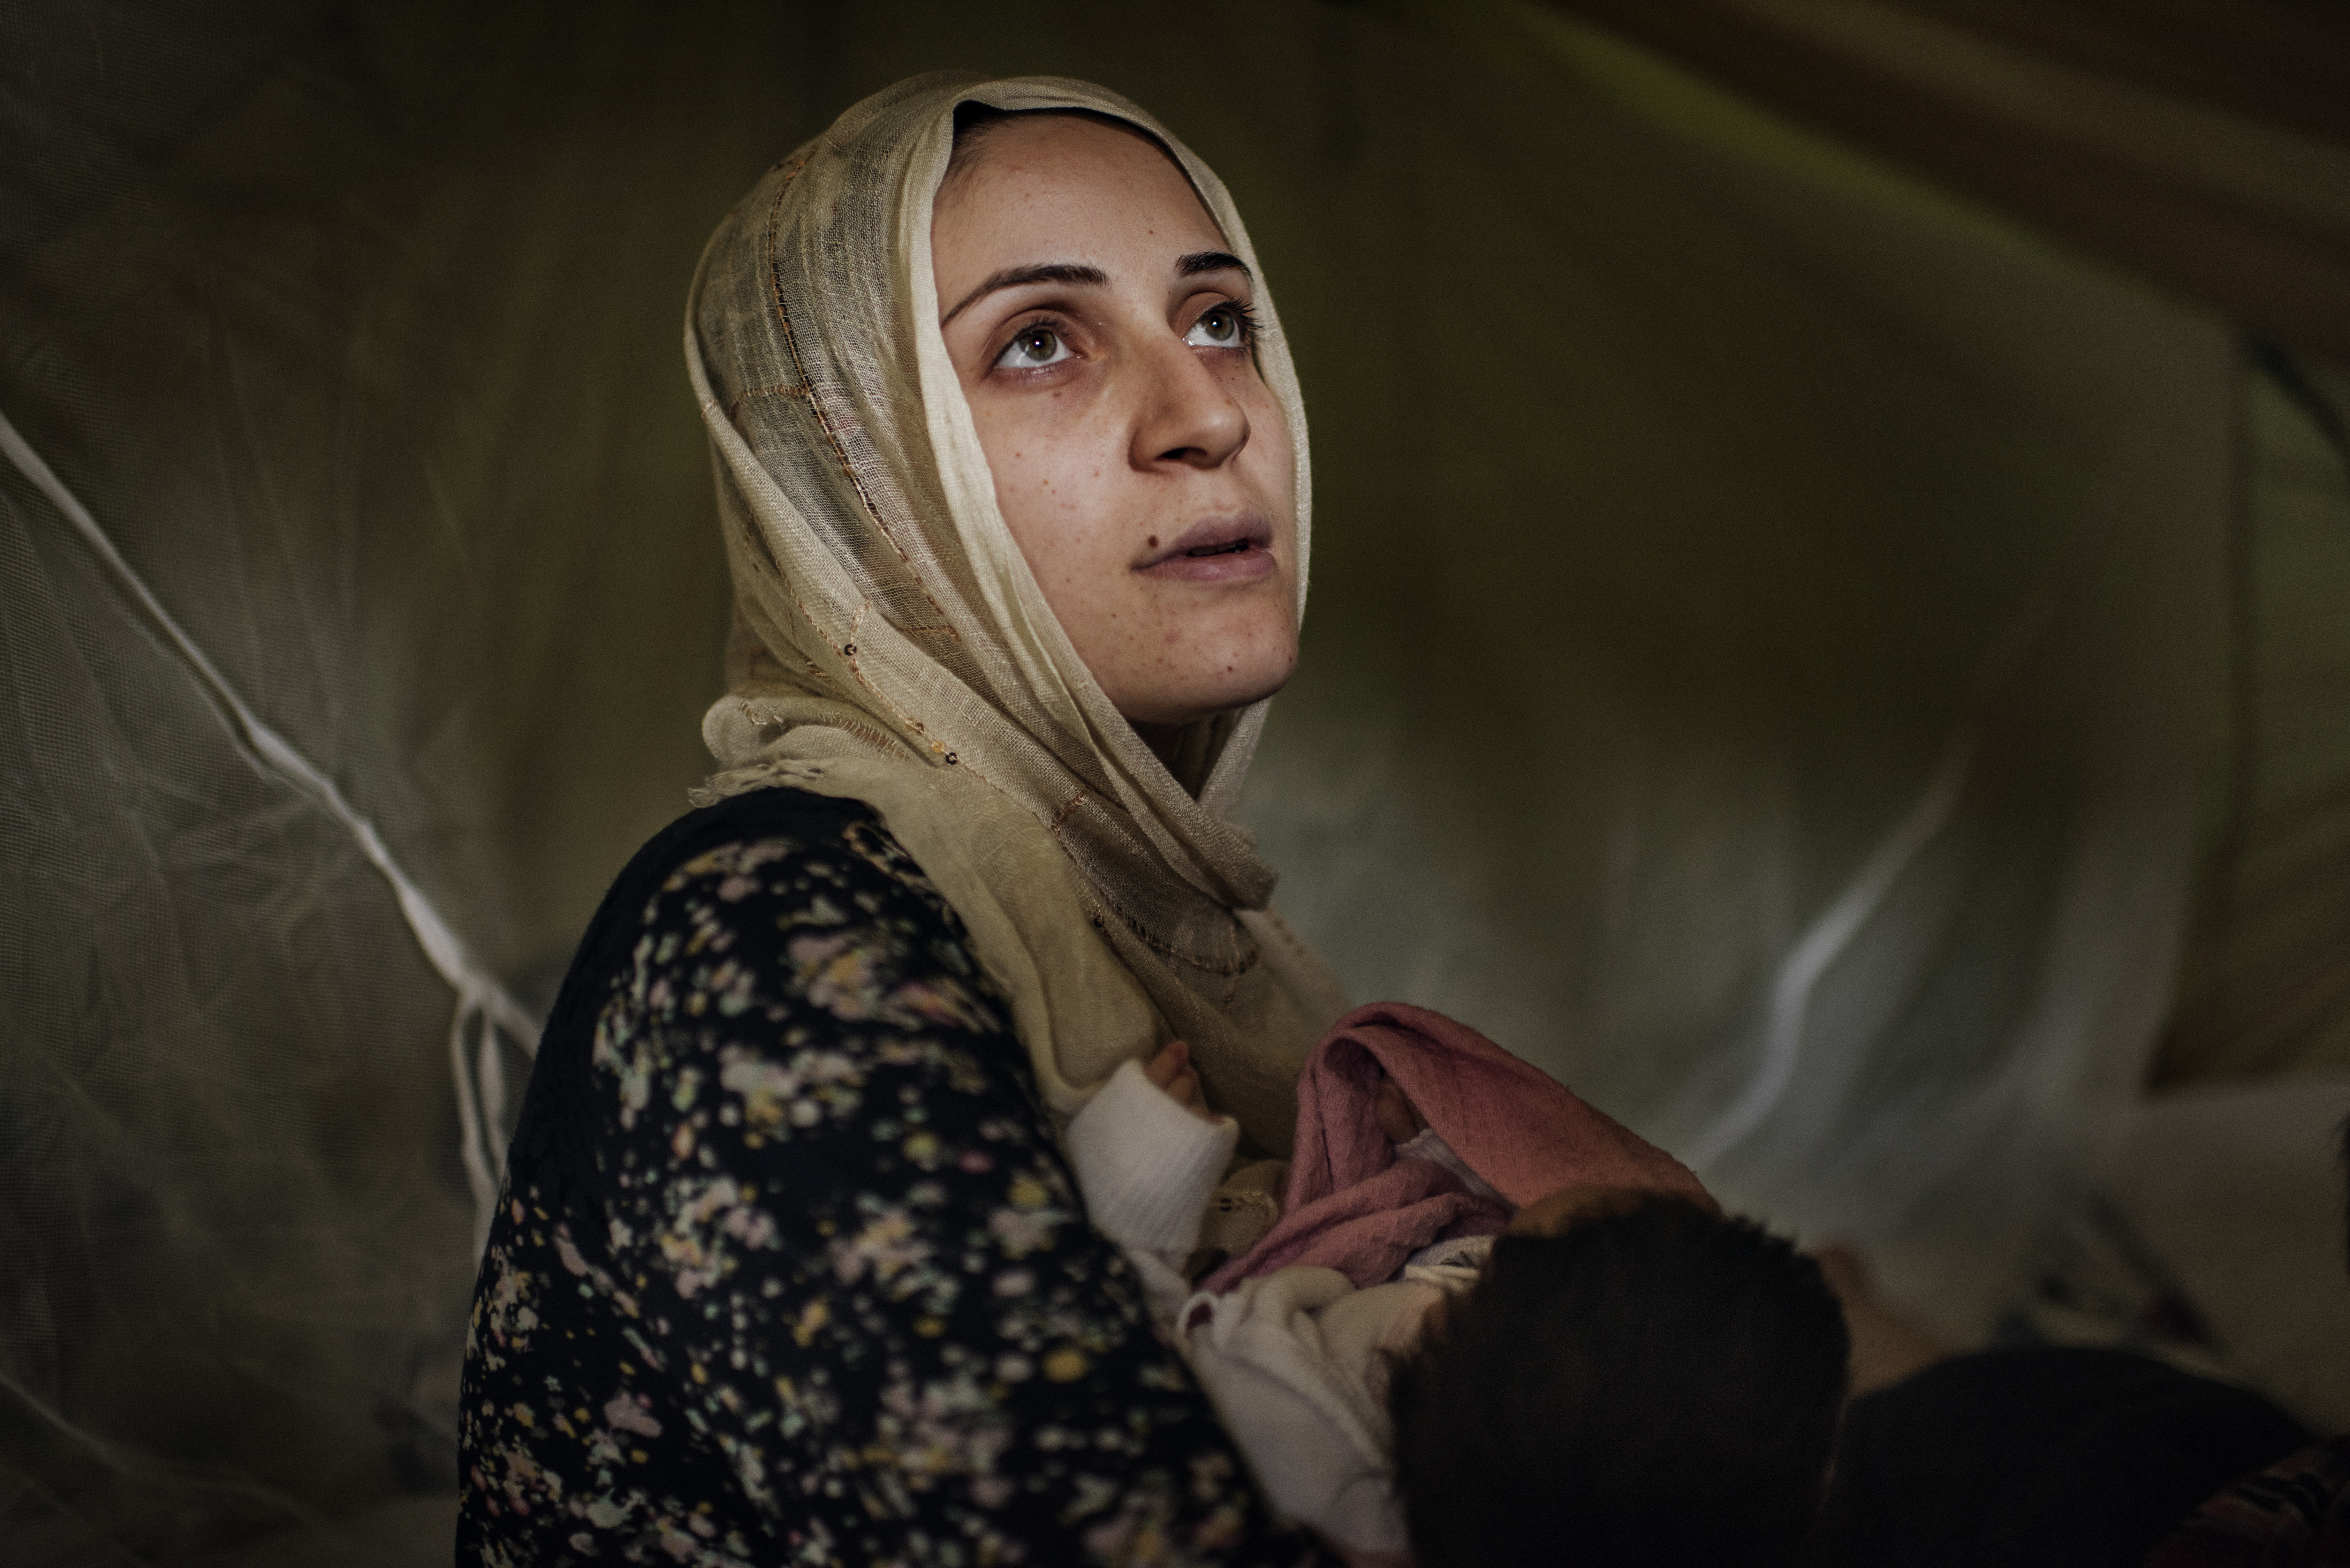 Taimma Abazli, 24, holds her new baby Heln in their tent at the Karamalis camp in Thessaloniki, Greece, September 2016.